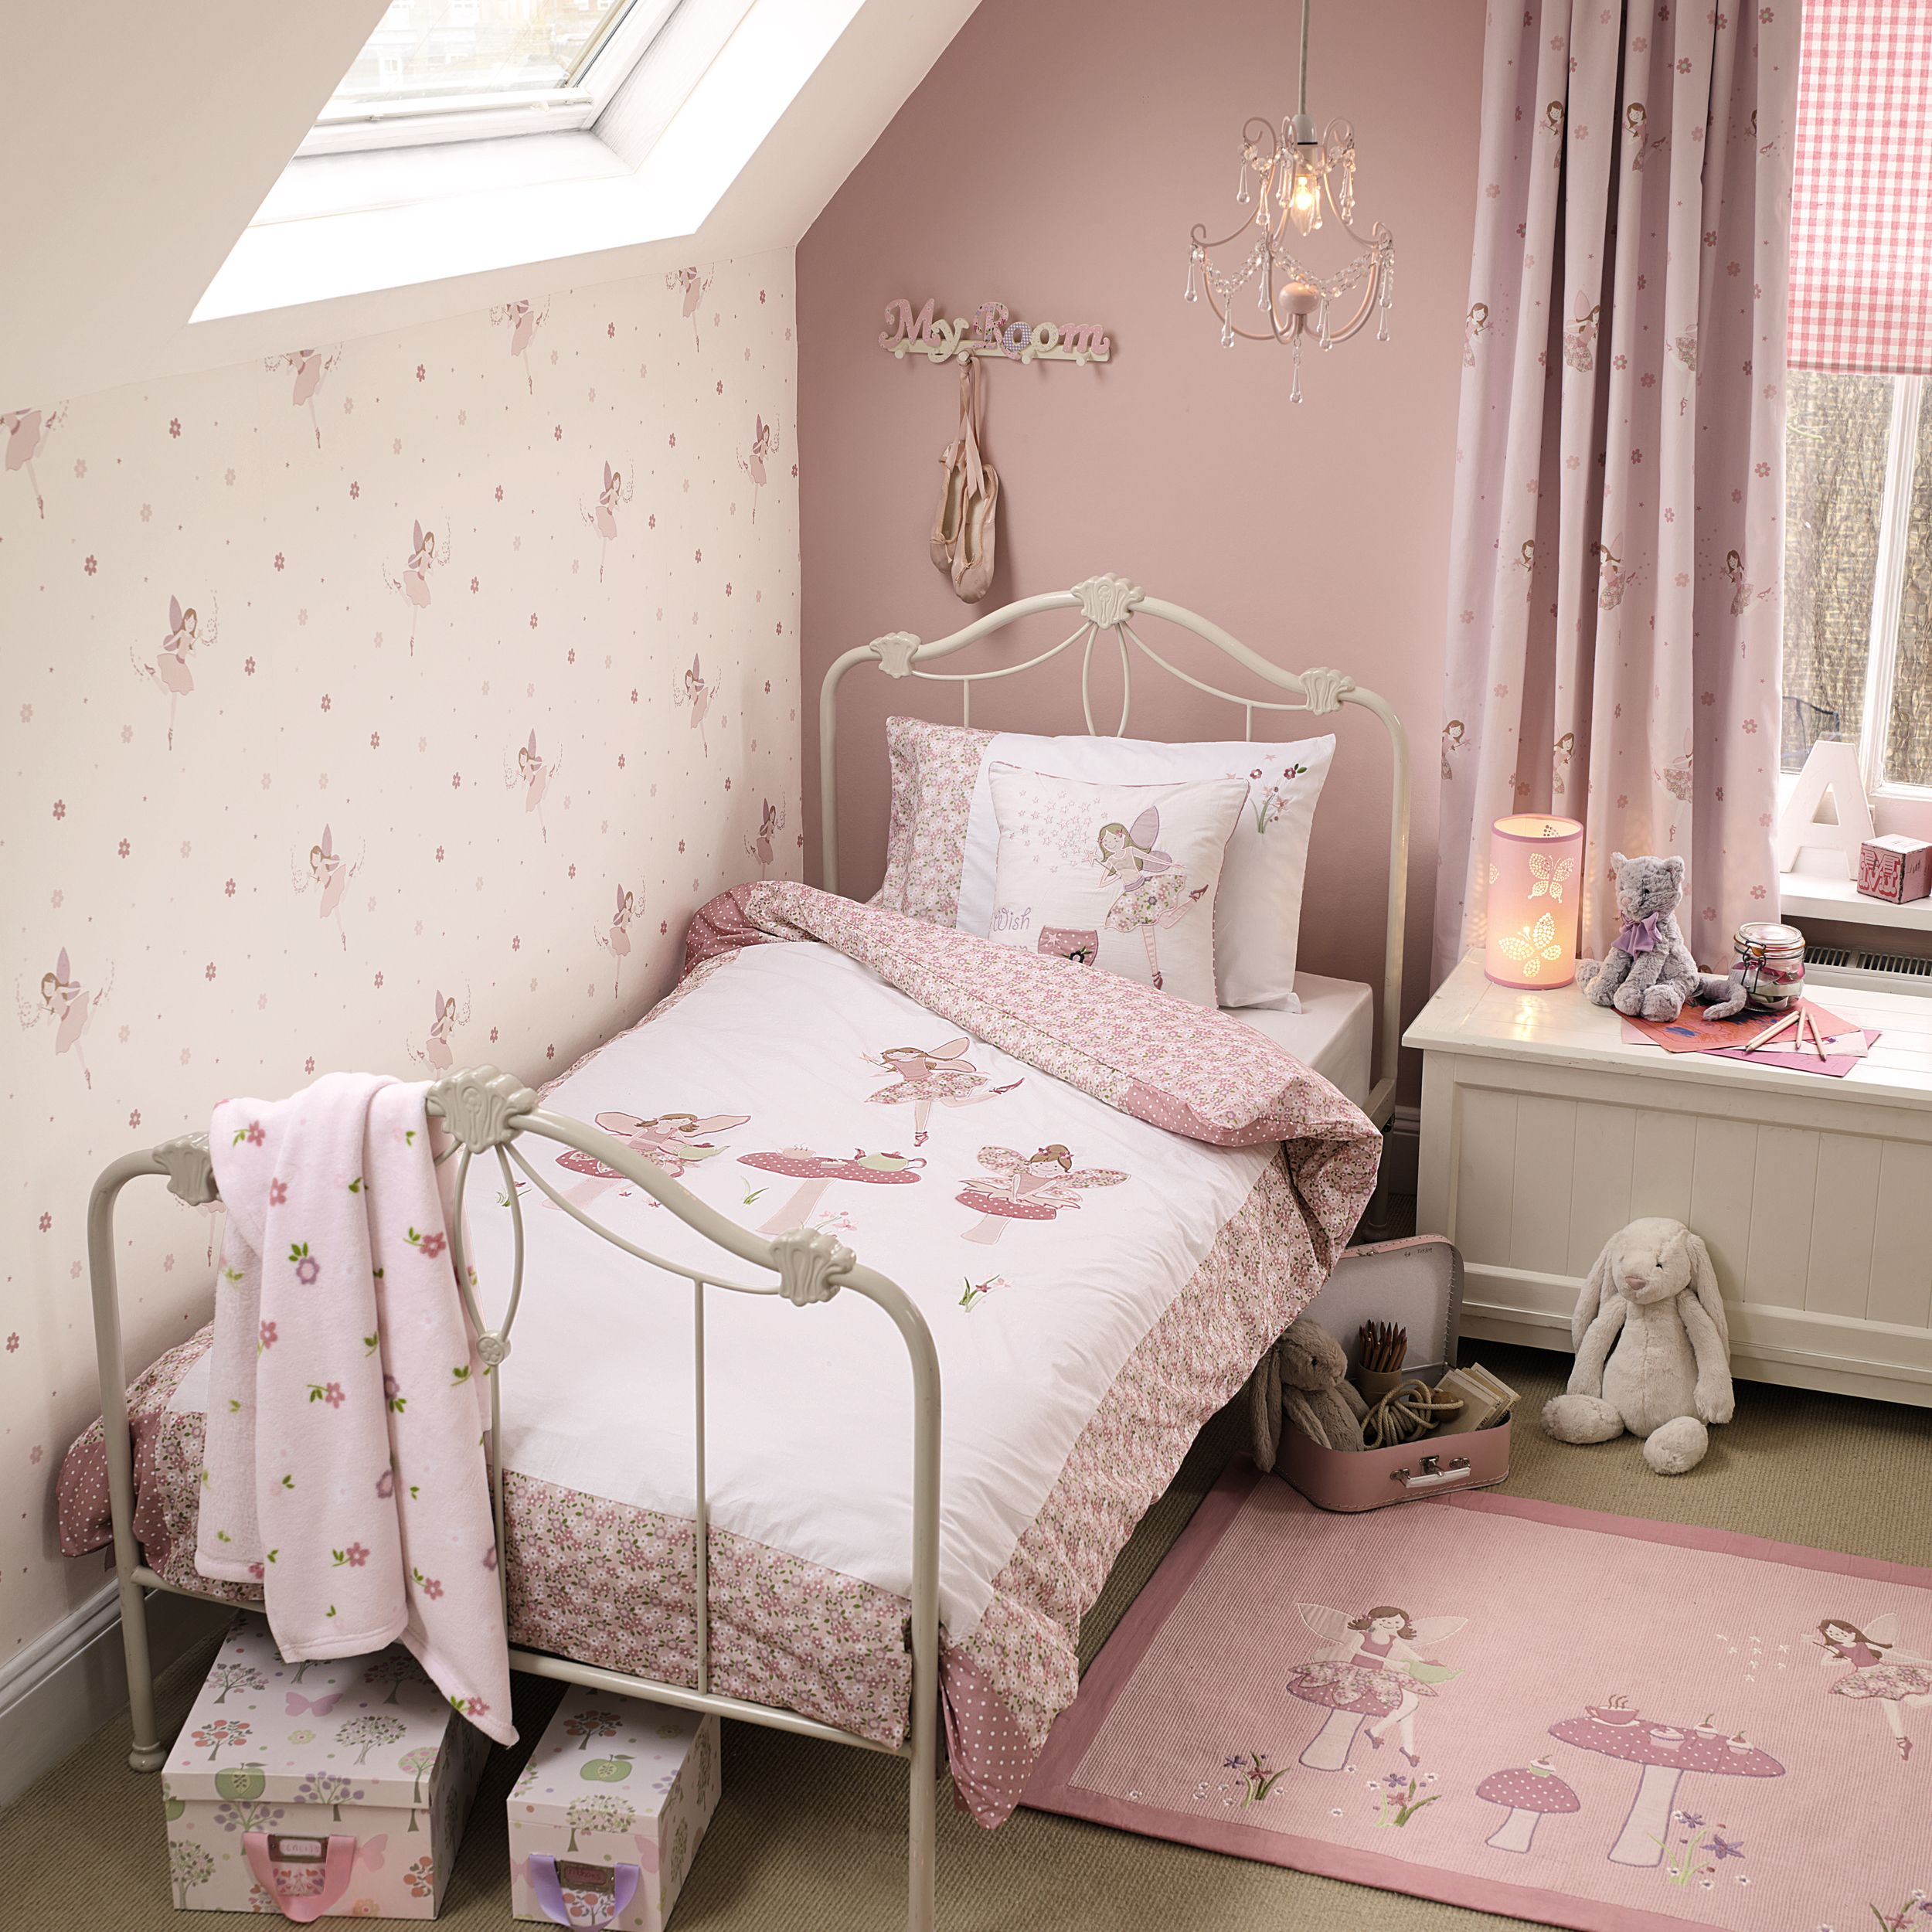 millie bedset features a duvet cover decorated with pretty